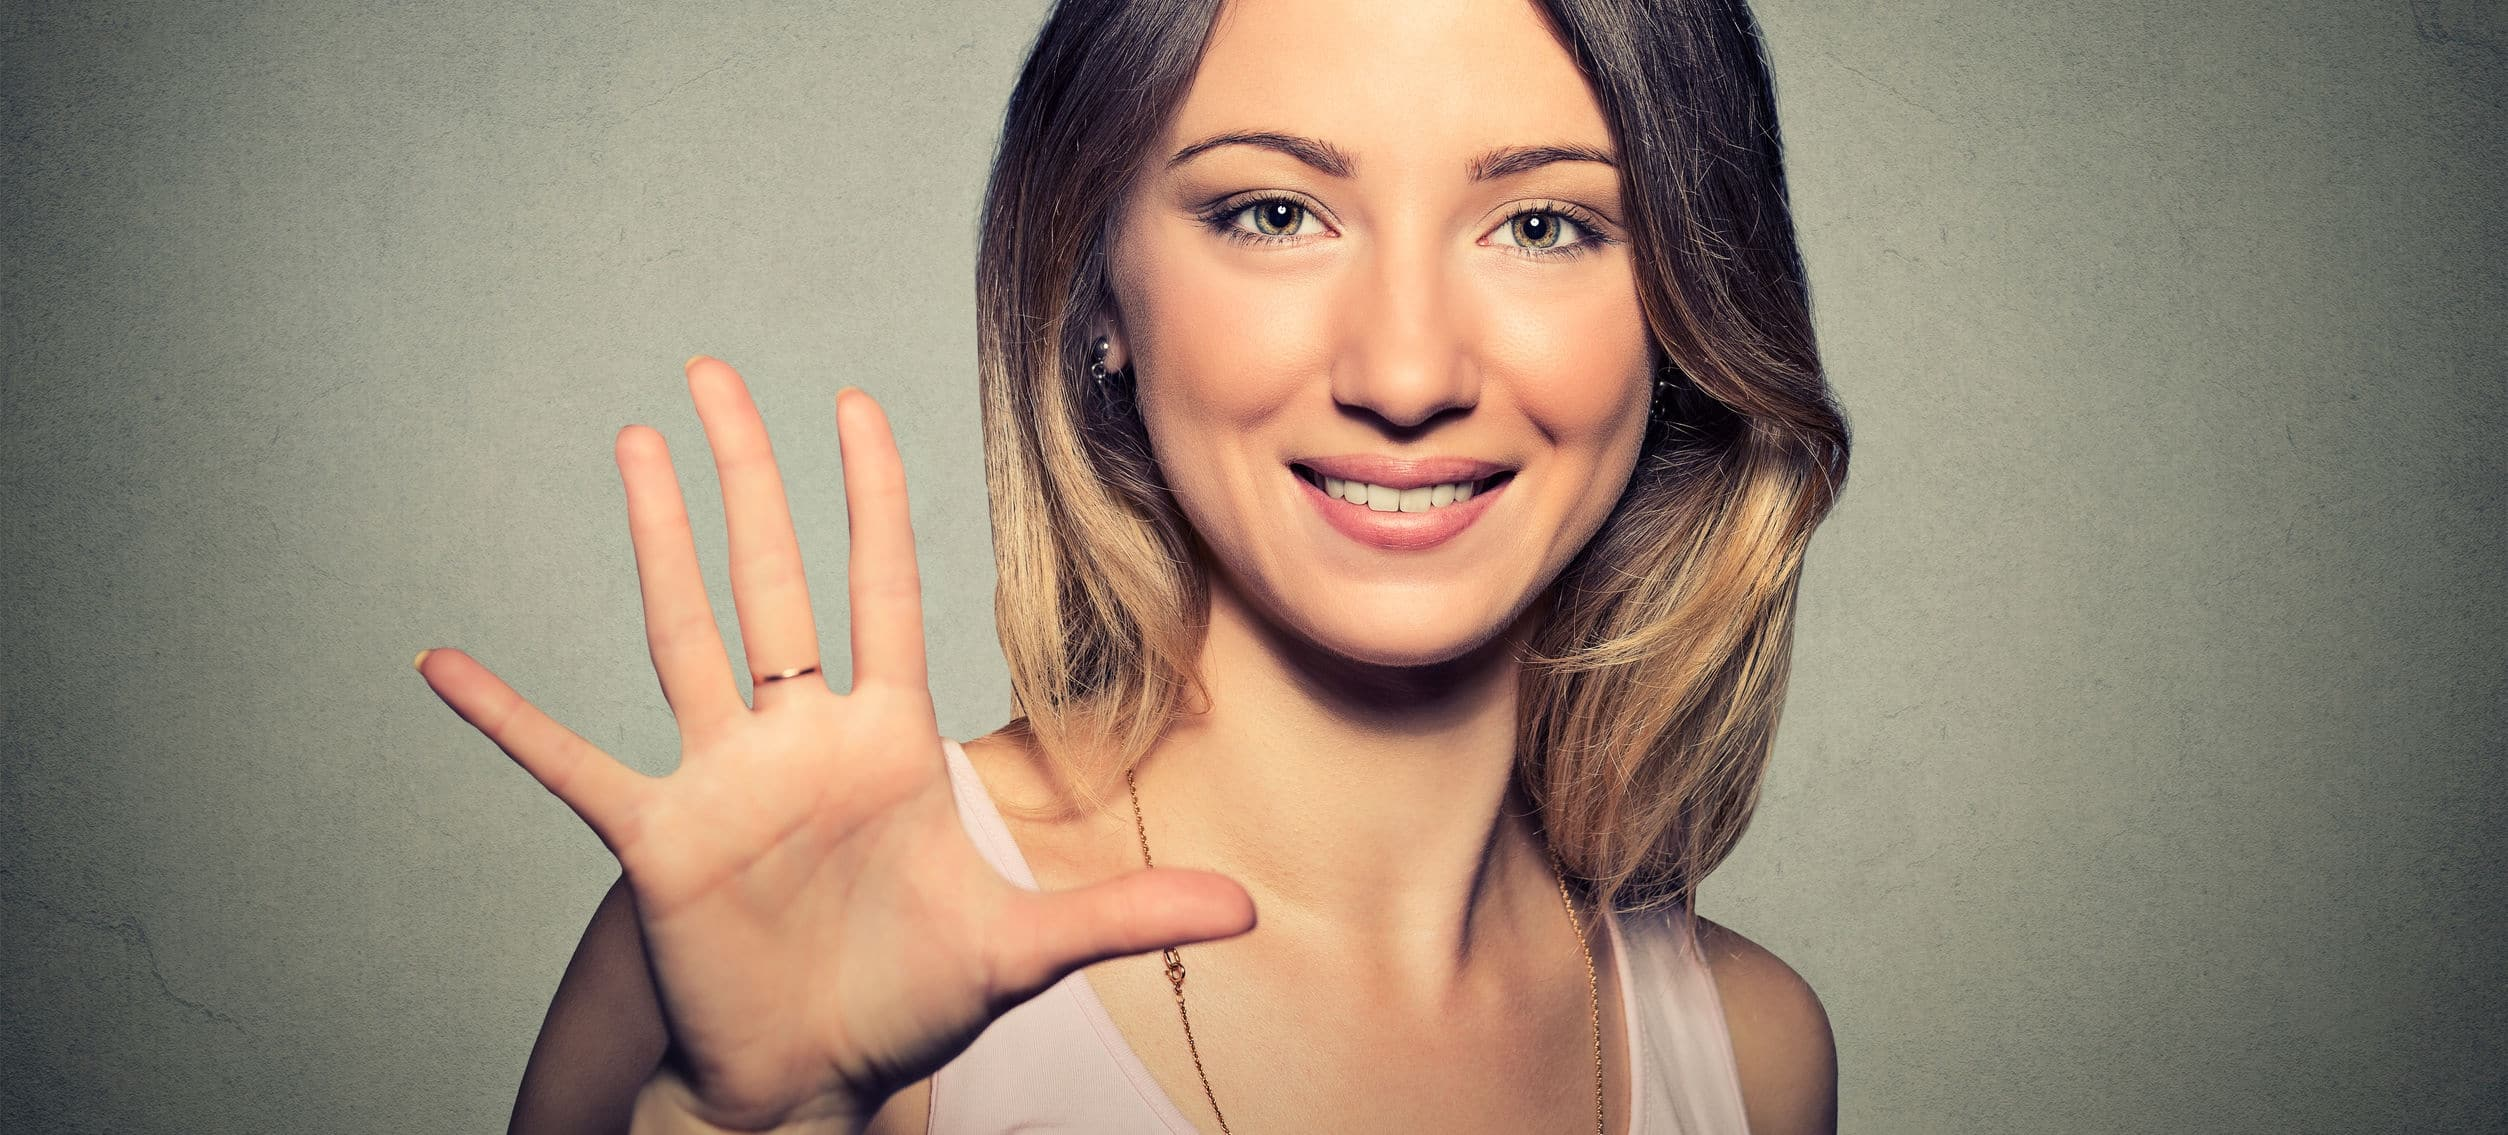 Smiling woman holding up five fingers